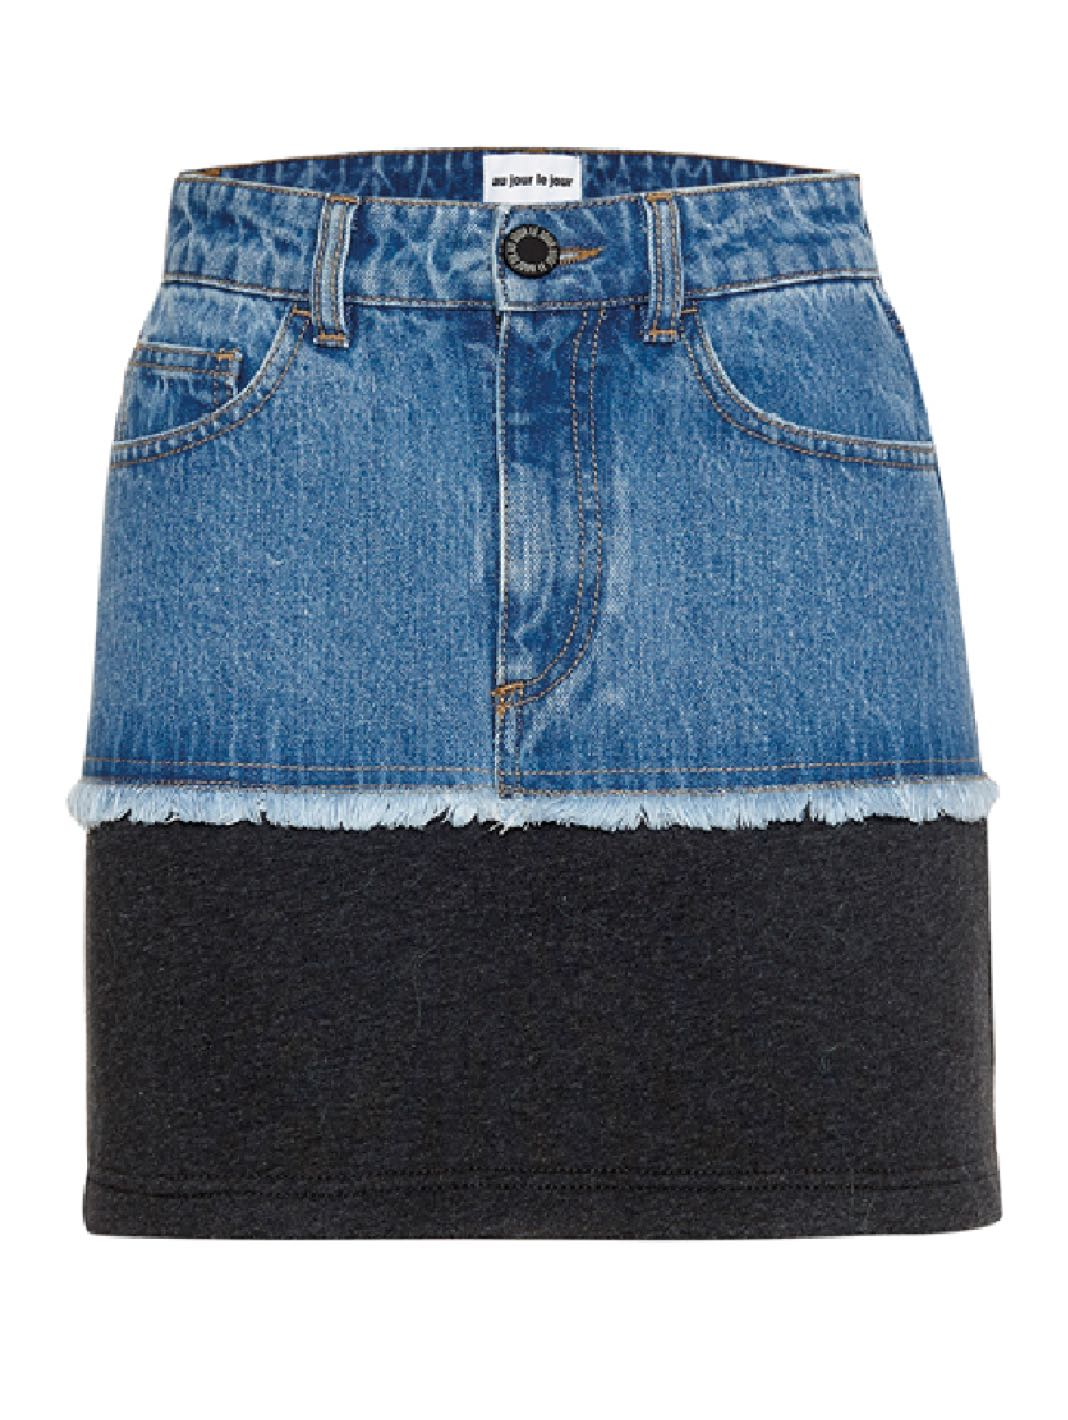 Lusaka Denim Mini Skirt - The Bobby Boga